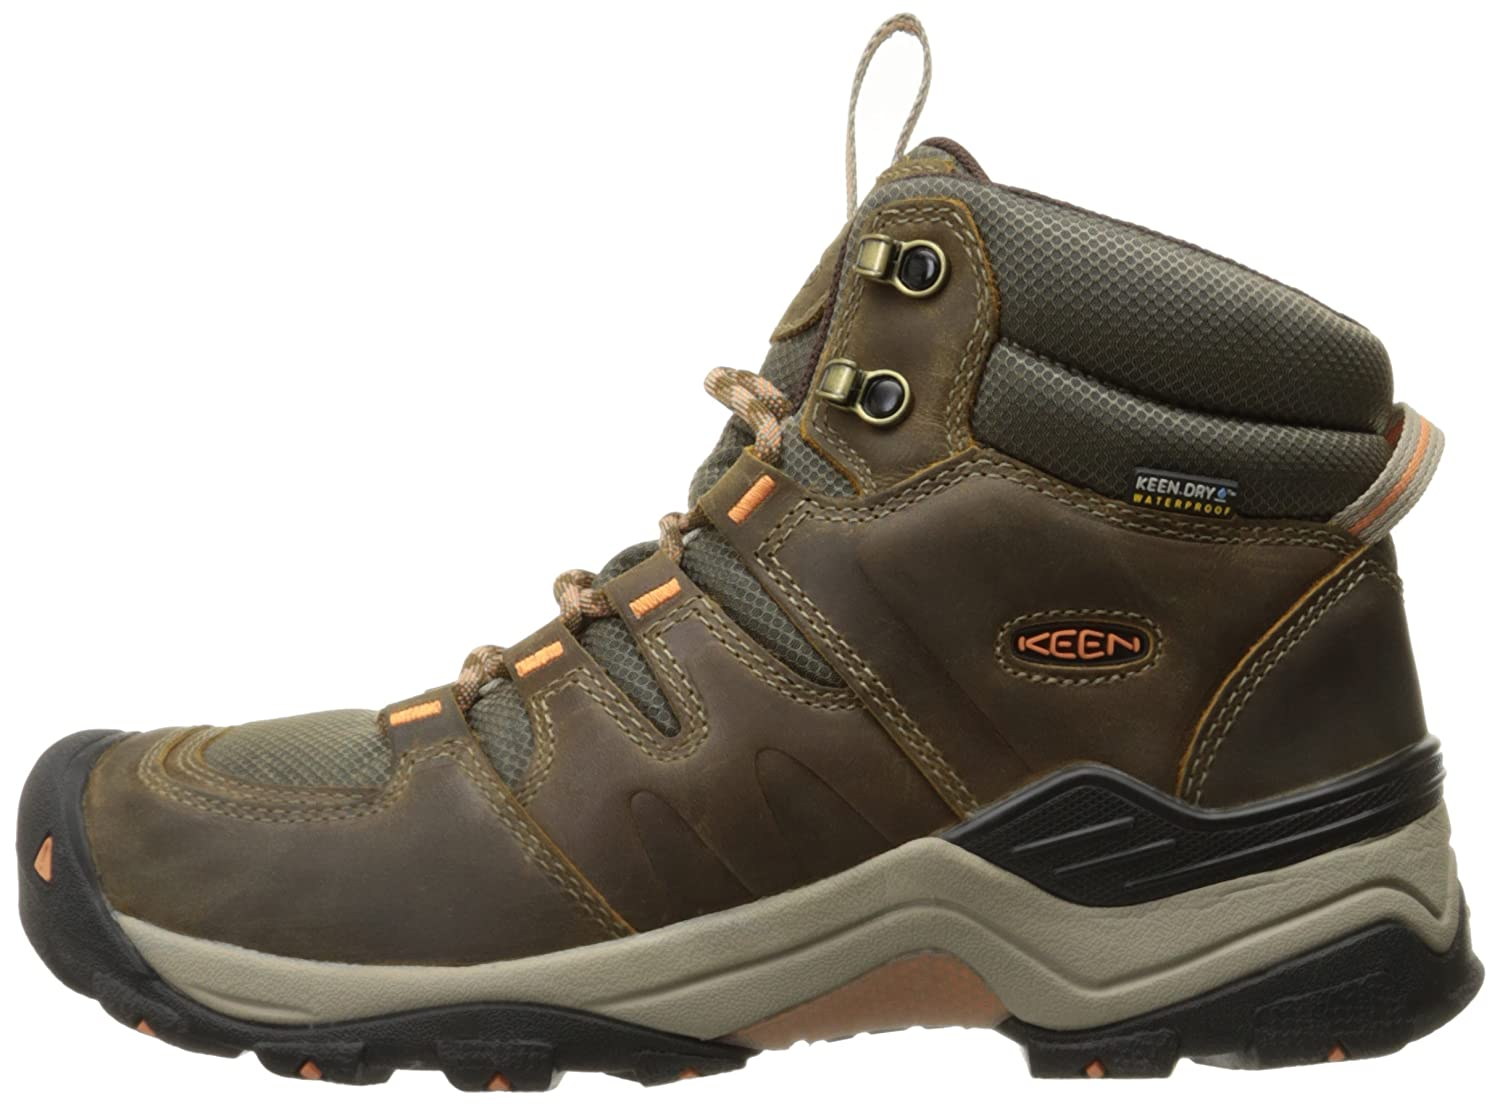 KEEN Women's B(M) Gypsum Ii Mid Wp-w Boot B019FD00EI 5 B(M) Women's US|Corn Stock/Gold Coral 5f30a3